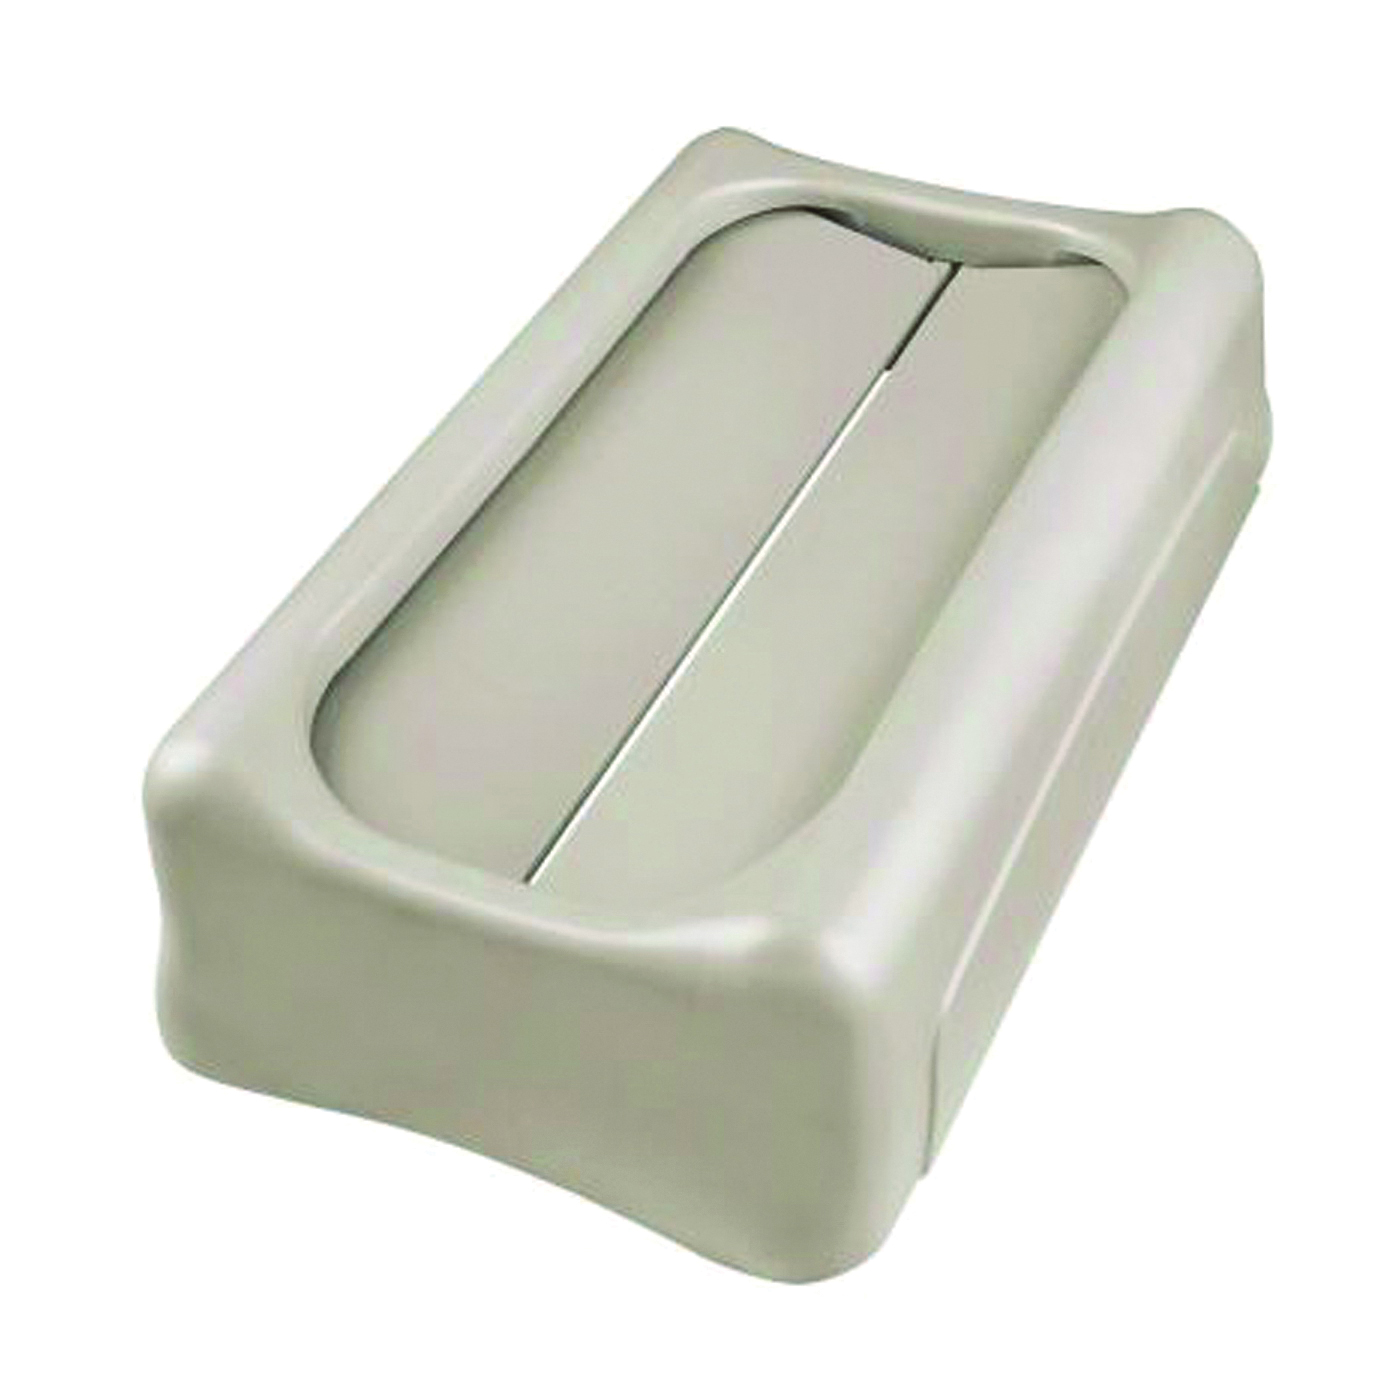 Picture of Rubbermaid FG267360BEIG Swing Lid, 23 gal, Plastic, Beige, For: 15-7/8 and 23 gal Slim Jim Containers